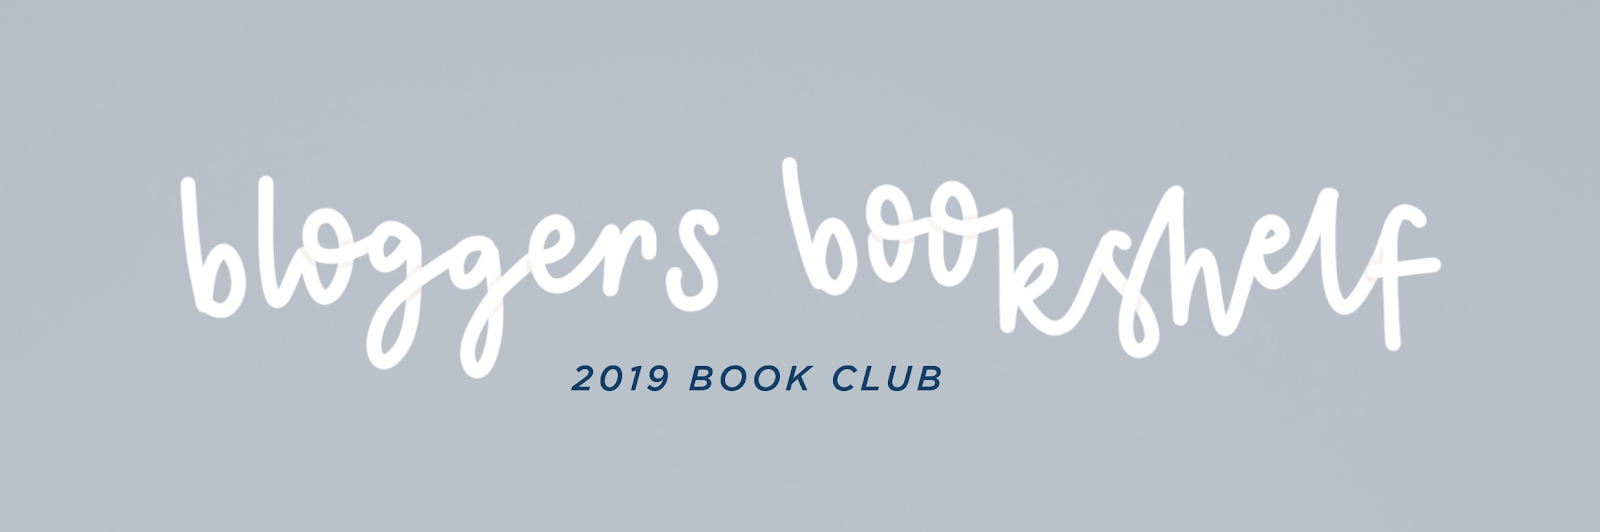 bloggers bookshelf book club 2019